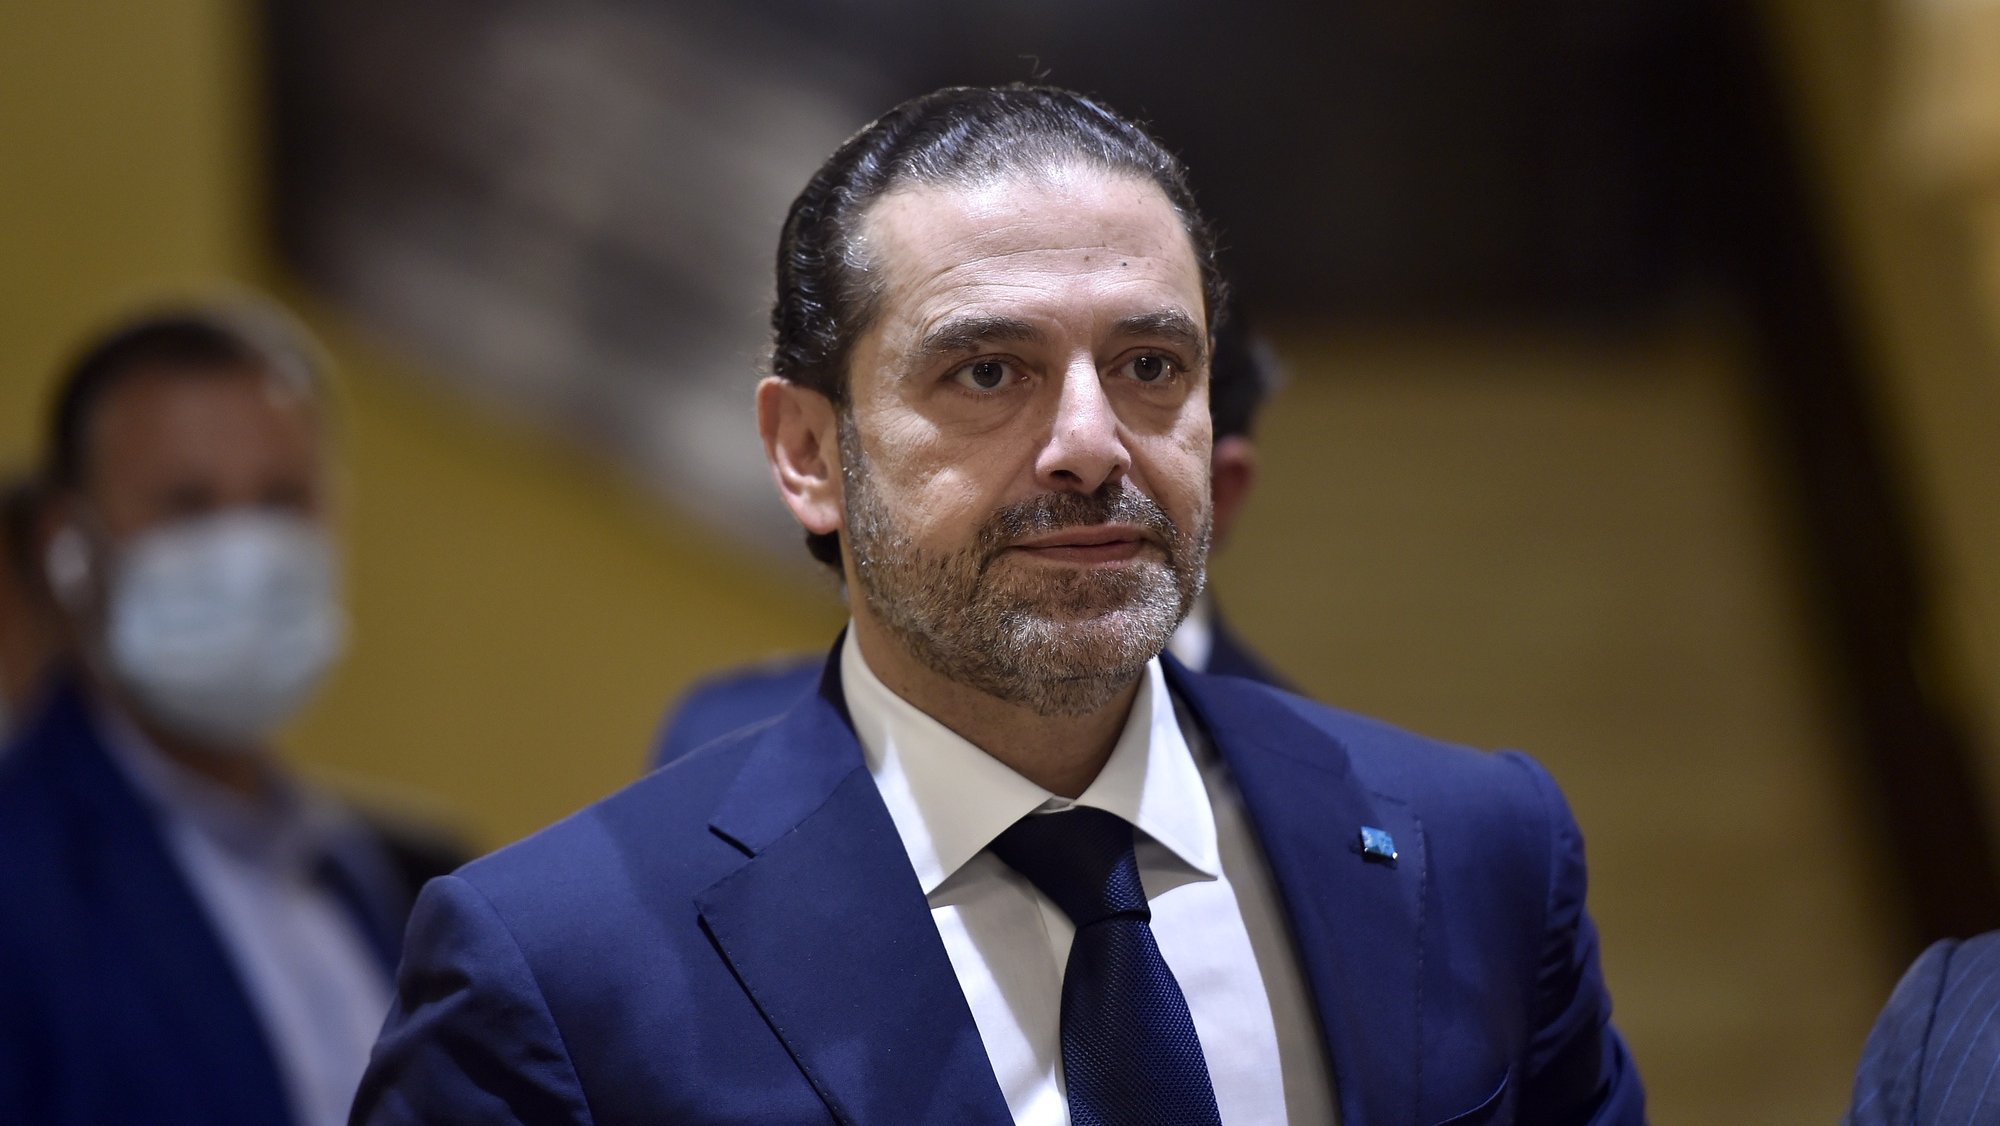 epa09346556 (FILE) - Lebanese Prime Minister-designate Saad Hariri waits before a meeting at his house in Beirut, Lebanon, 07 April 2021 (reissued 15 July 2021). Hariri, who was tasked nine months ago with forming the new government, said on 15 july he is stepping down a day after he presented the cabinet proposal to President Michel Aoun who has not accepted the government.  EPA/WAEL HAMZEH *** Local Caption *** 56811575